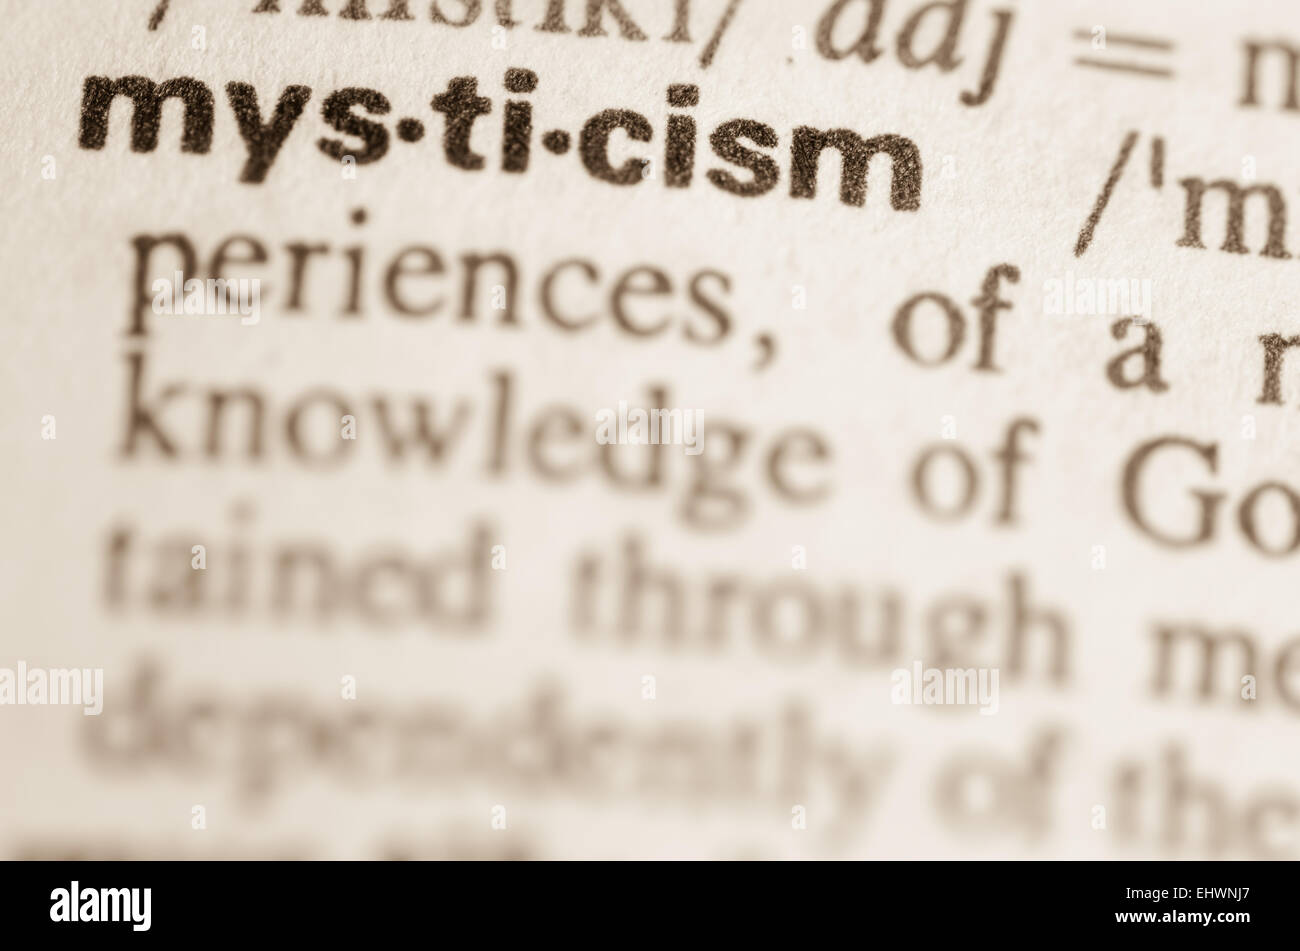 Definition of word mysticism in dictionary Stock Photo